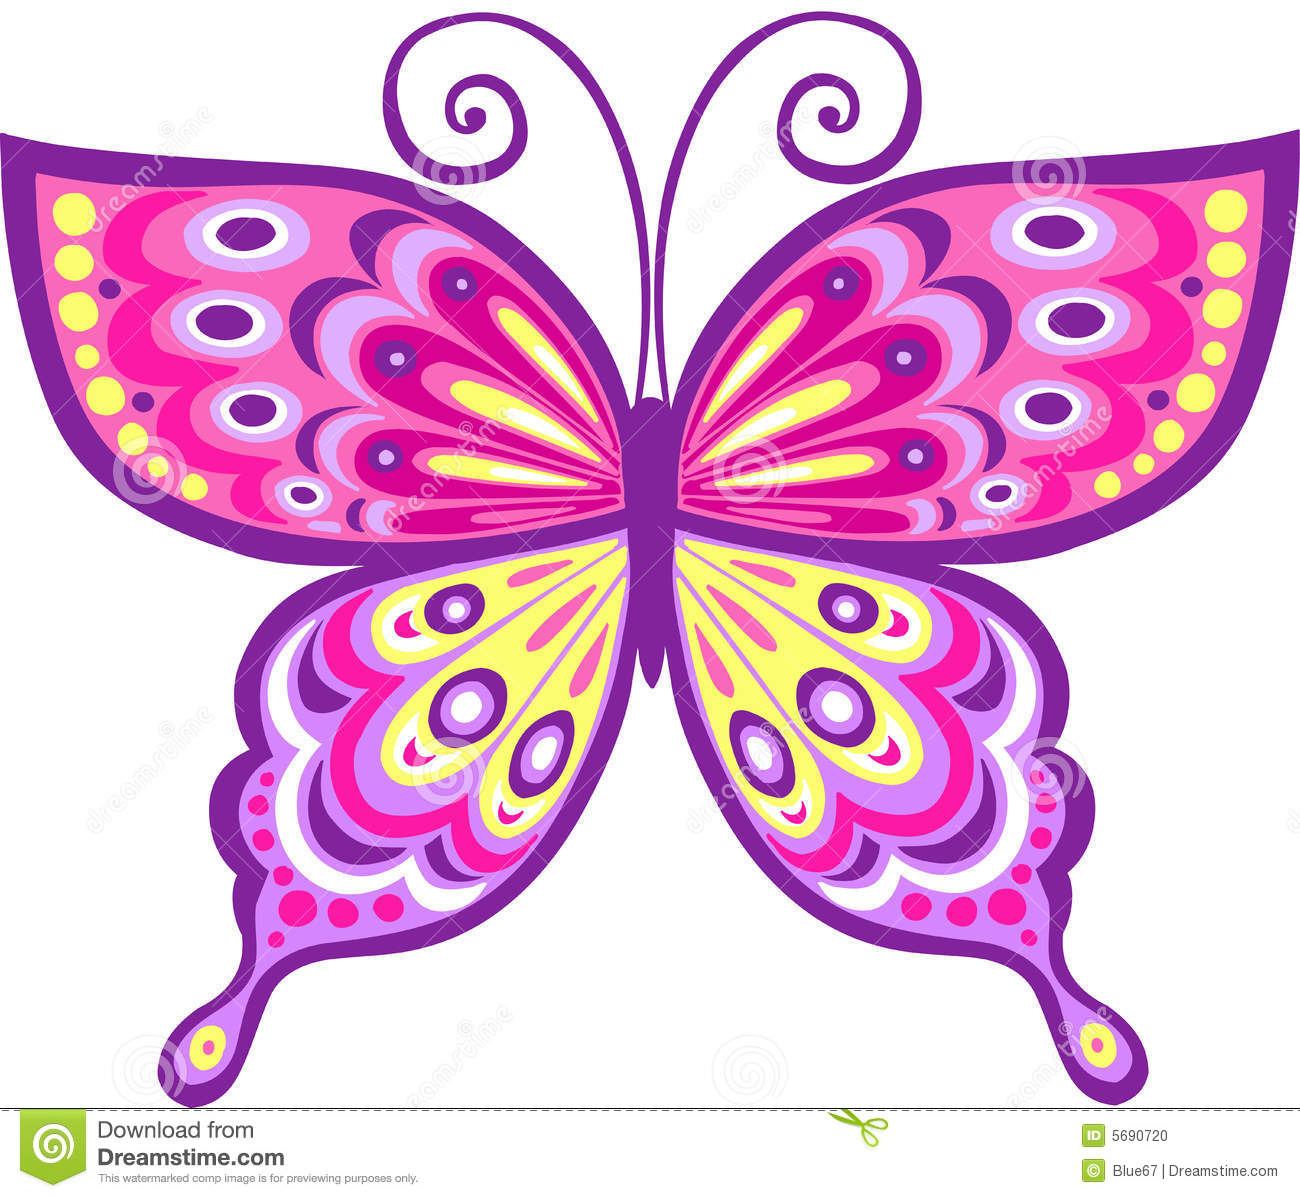 https://thumbs.dreamstime.com/z/pink-butterfly-vector-illustration-5690720.jpg Pink Butterfly Graphics